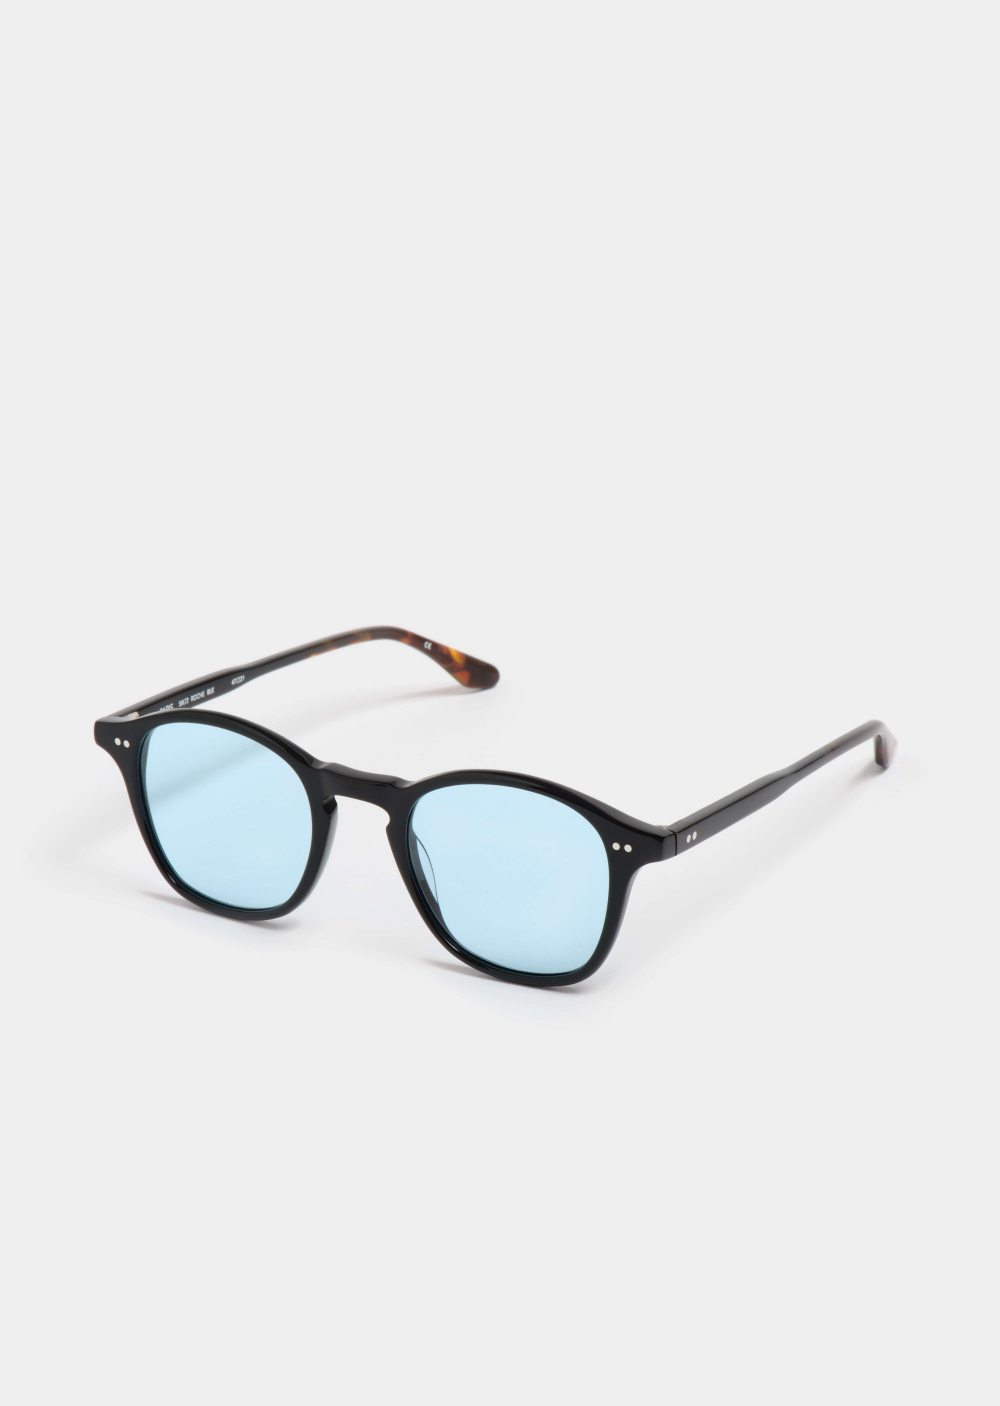 PETER AND MAY -  - LT2 Roche RX black blue